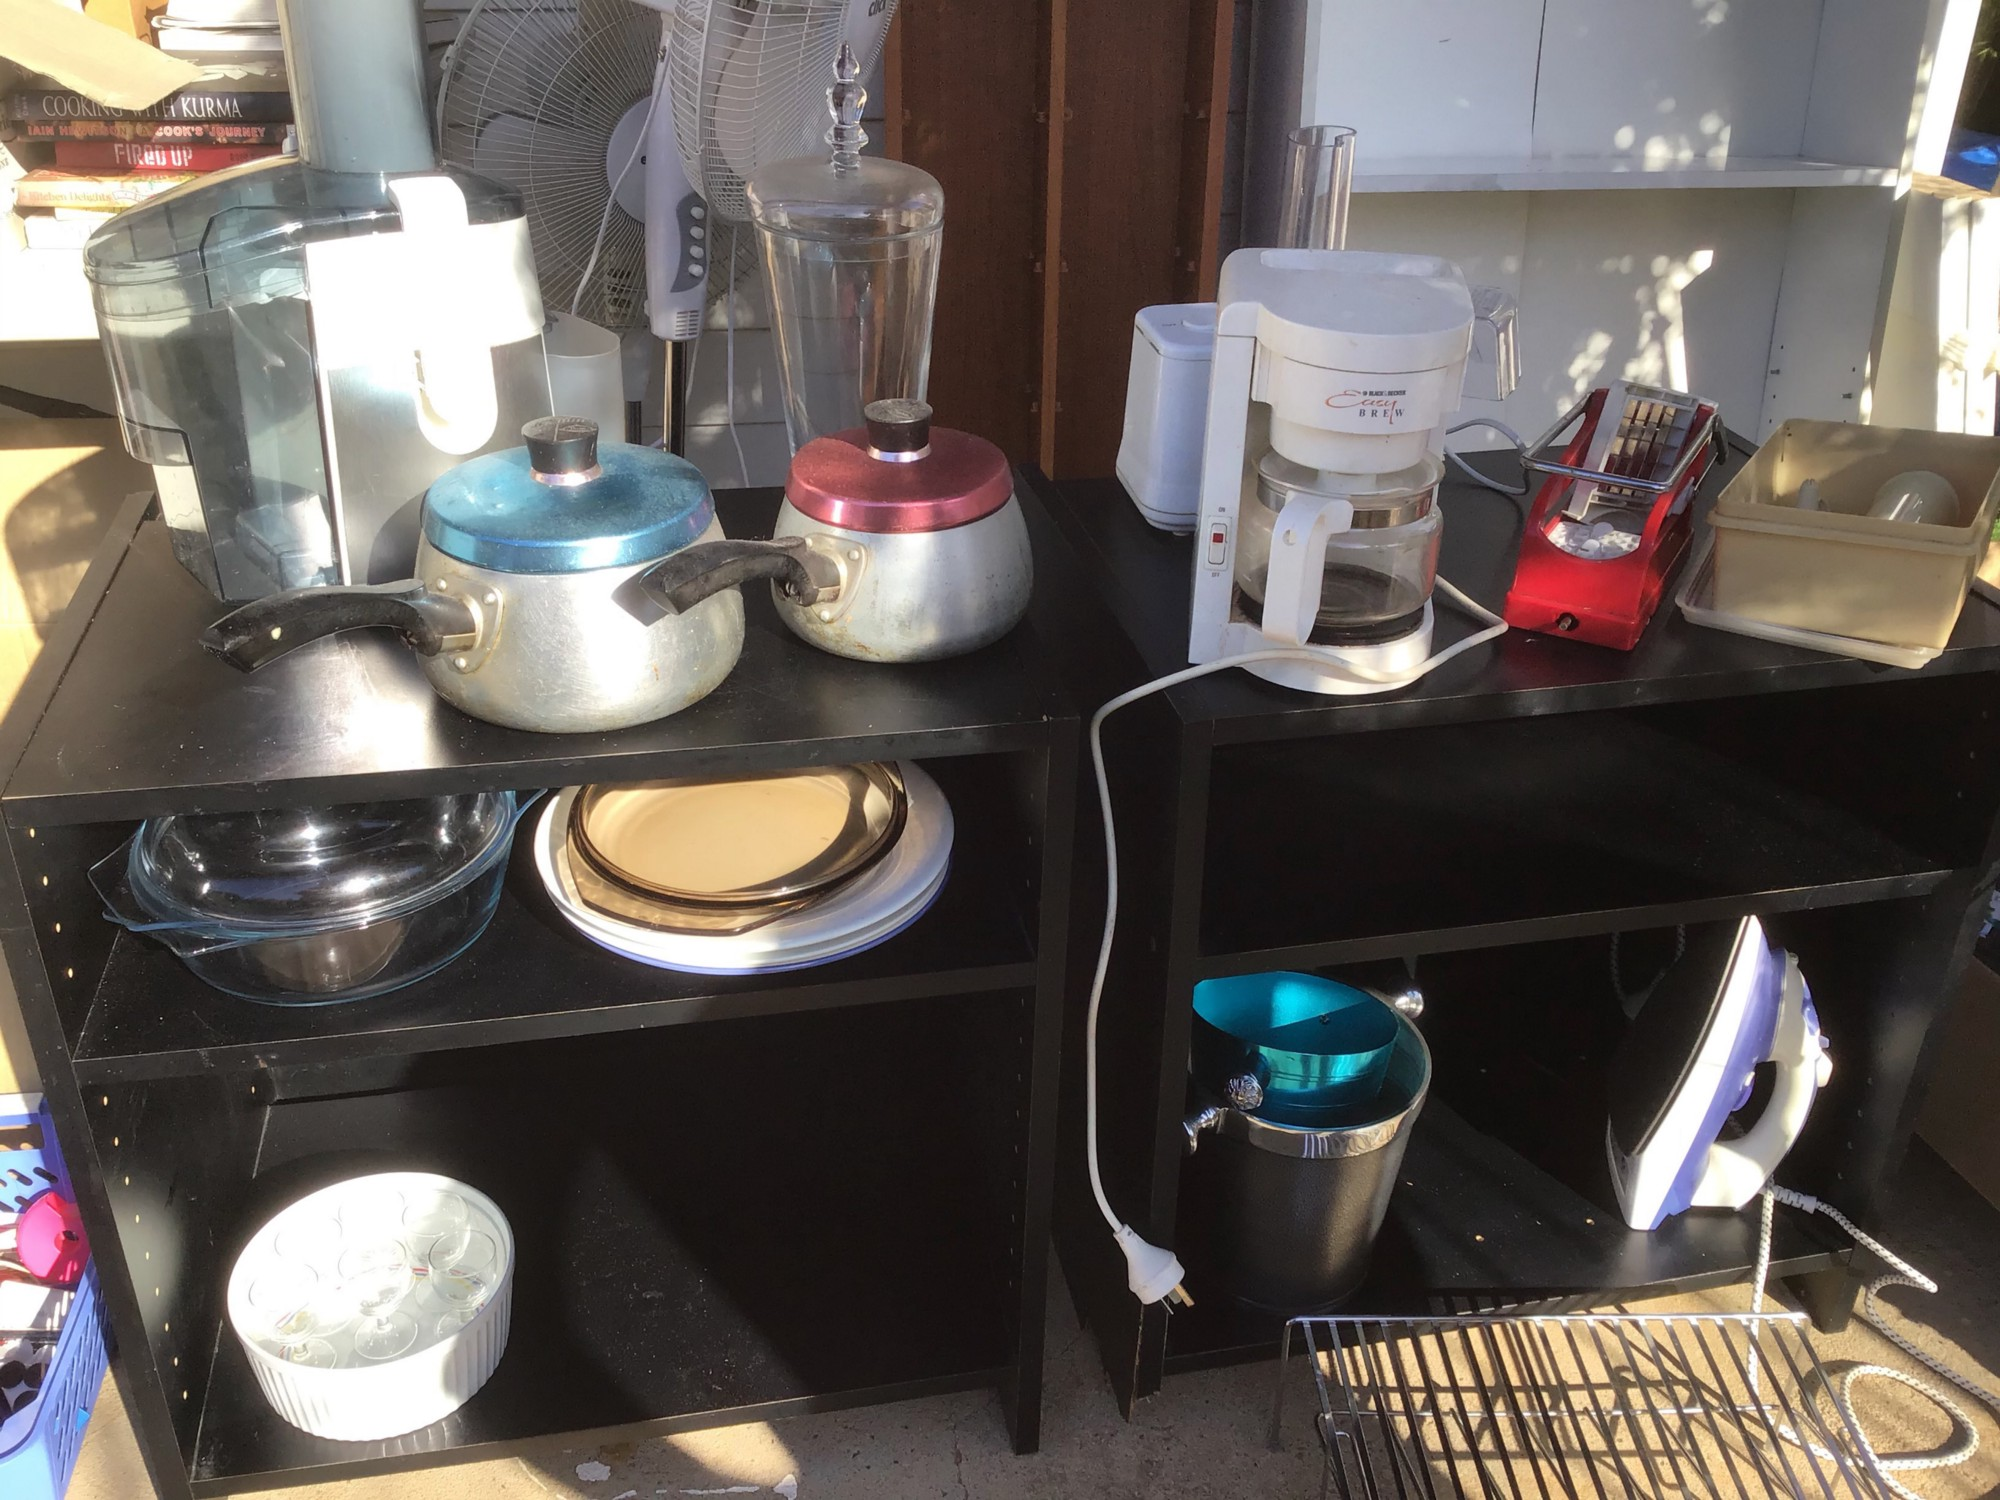 A close up shot of two small black side tables with household items such as saucepans, a coffee maker, a juicer, and iron, some baking ware. All this is on a front porch, ready to give away.